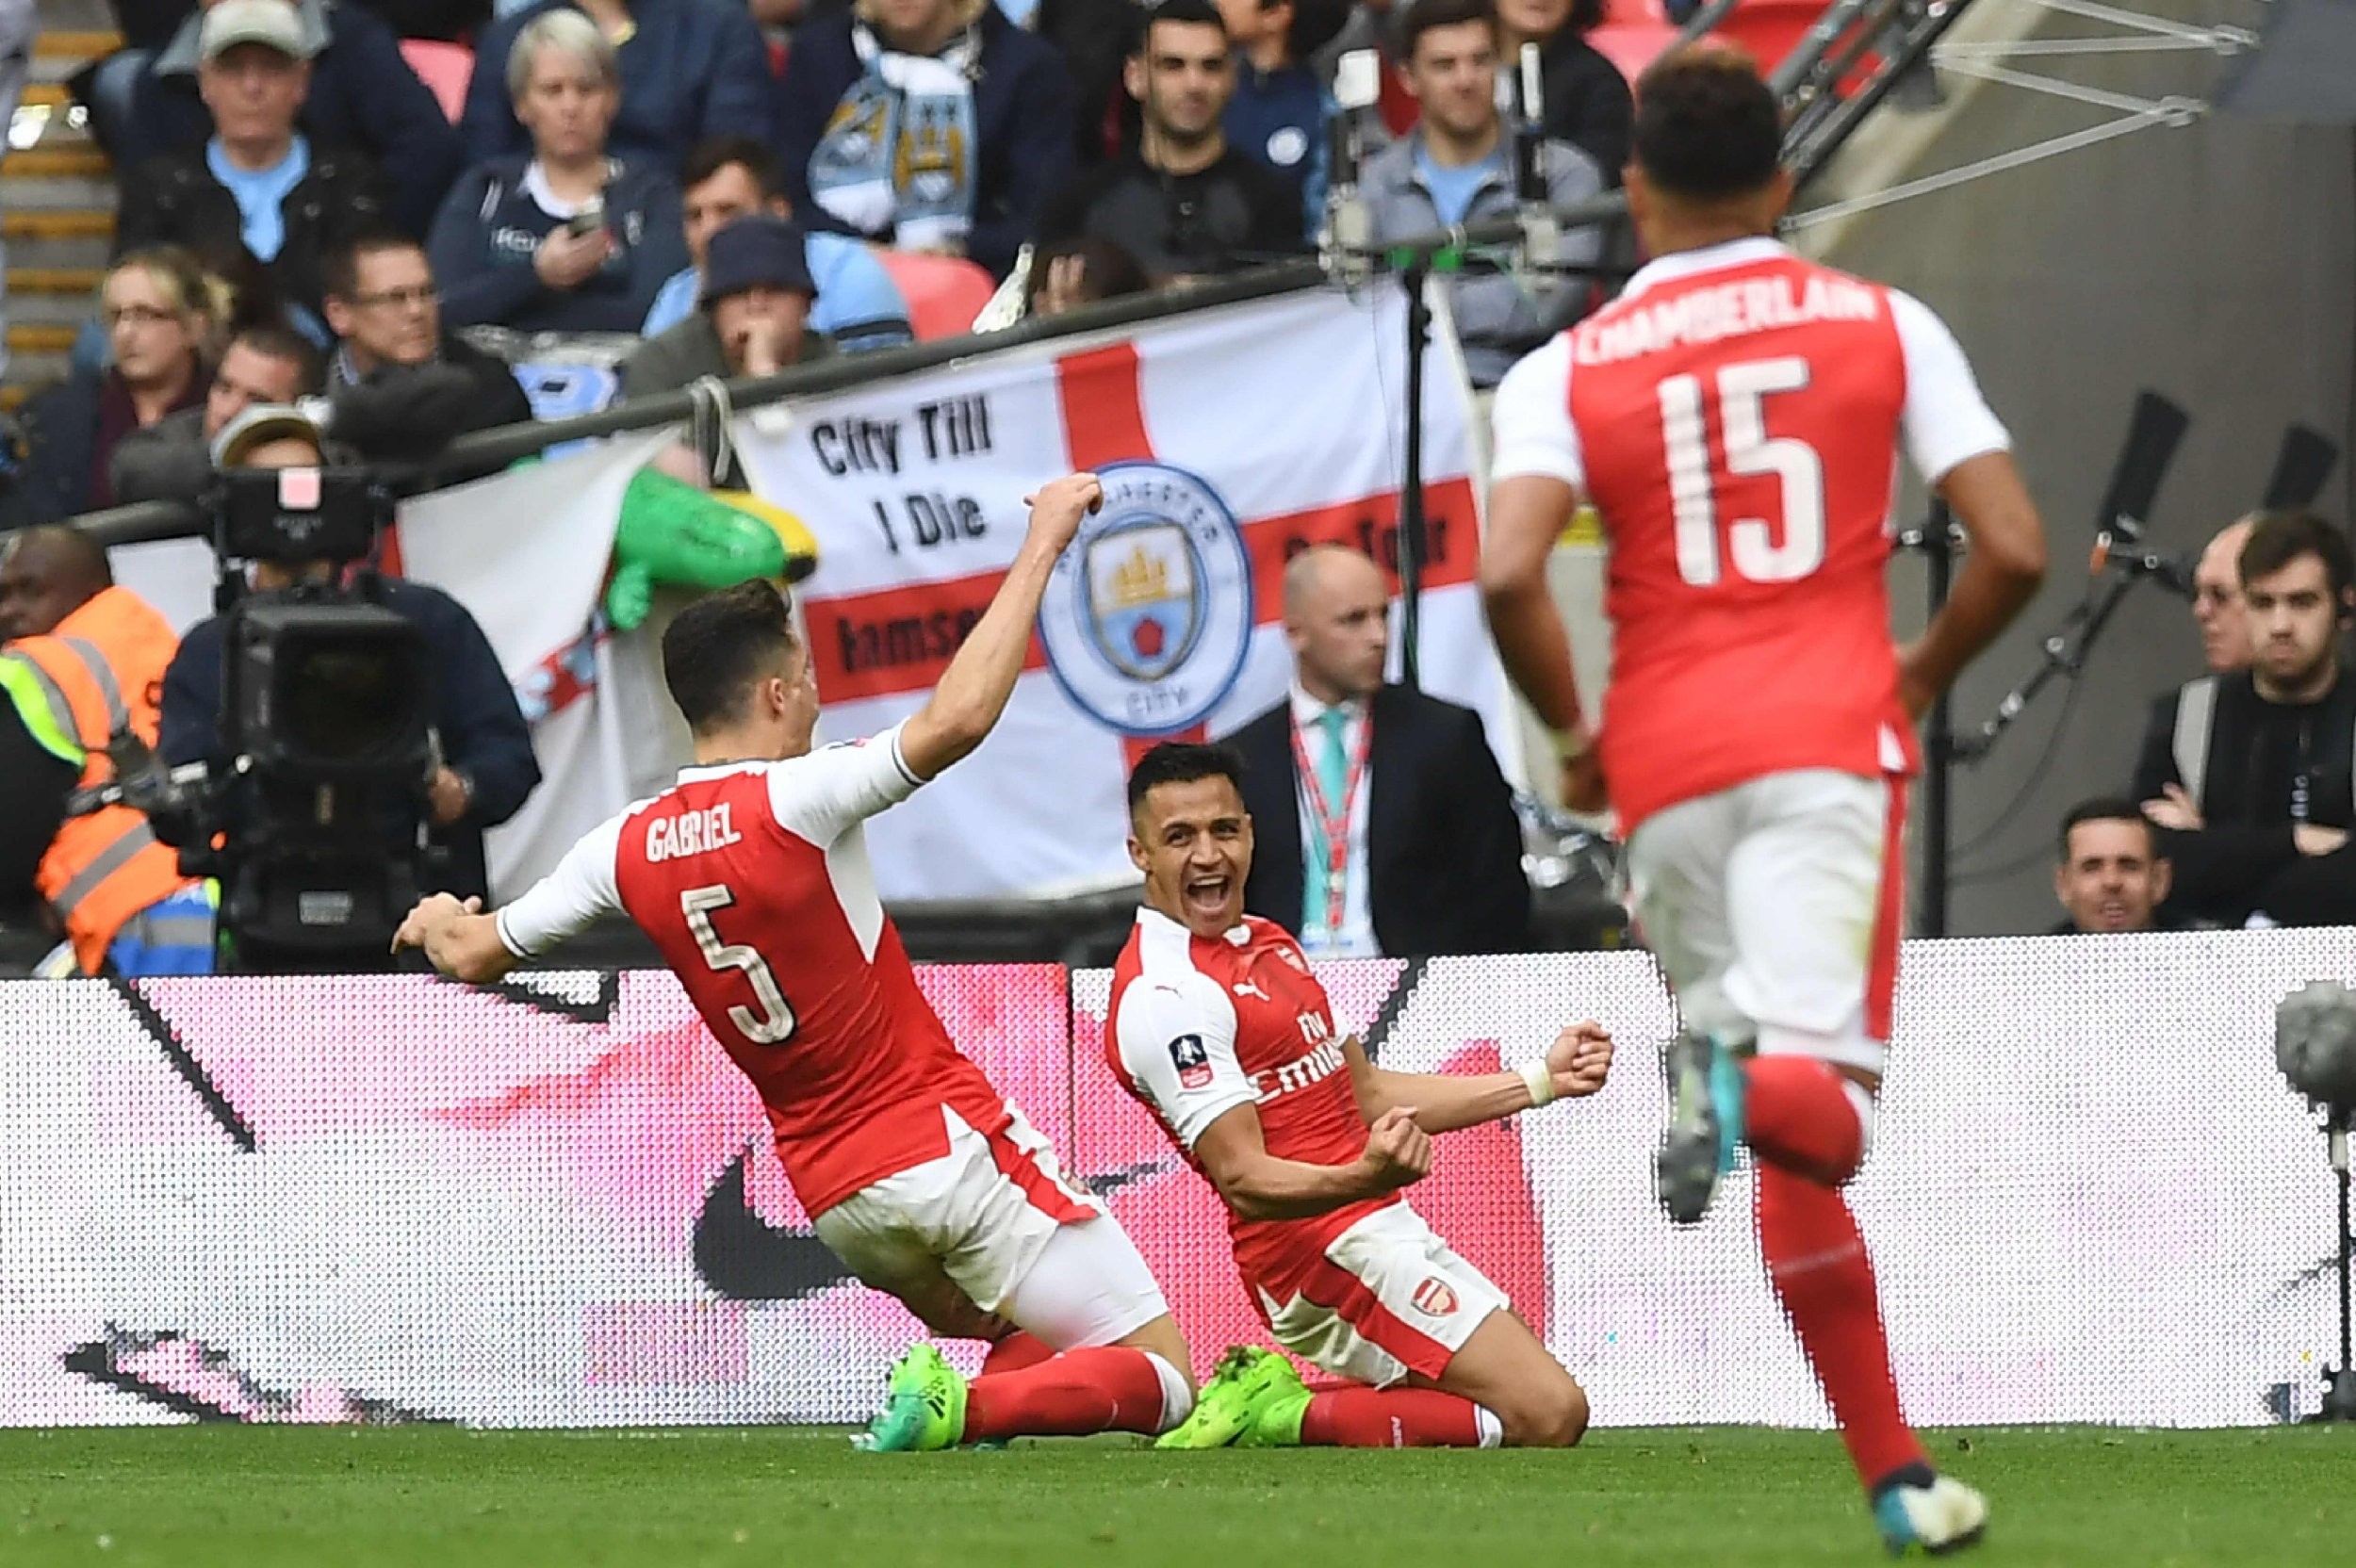 Arsenal 2 Man City 1 player ratings: Alexis Sanchez fires Gunners into the final against Chelsea